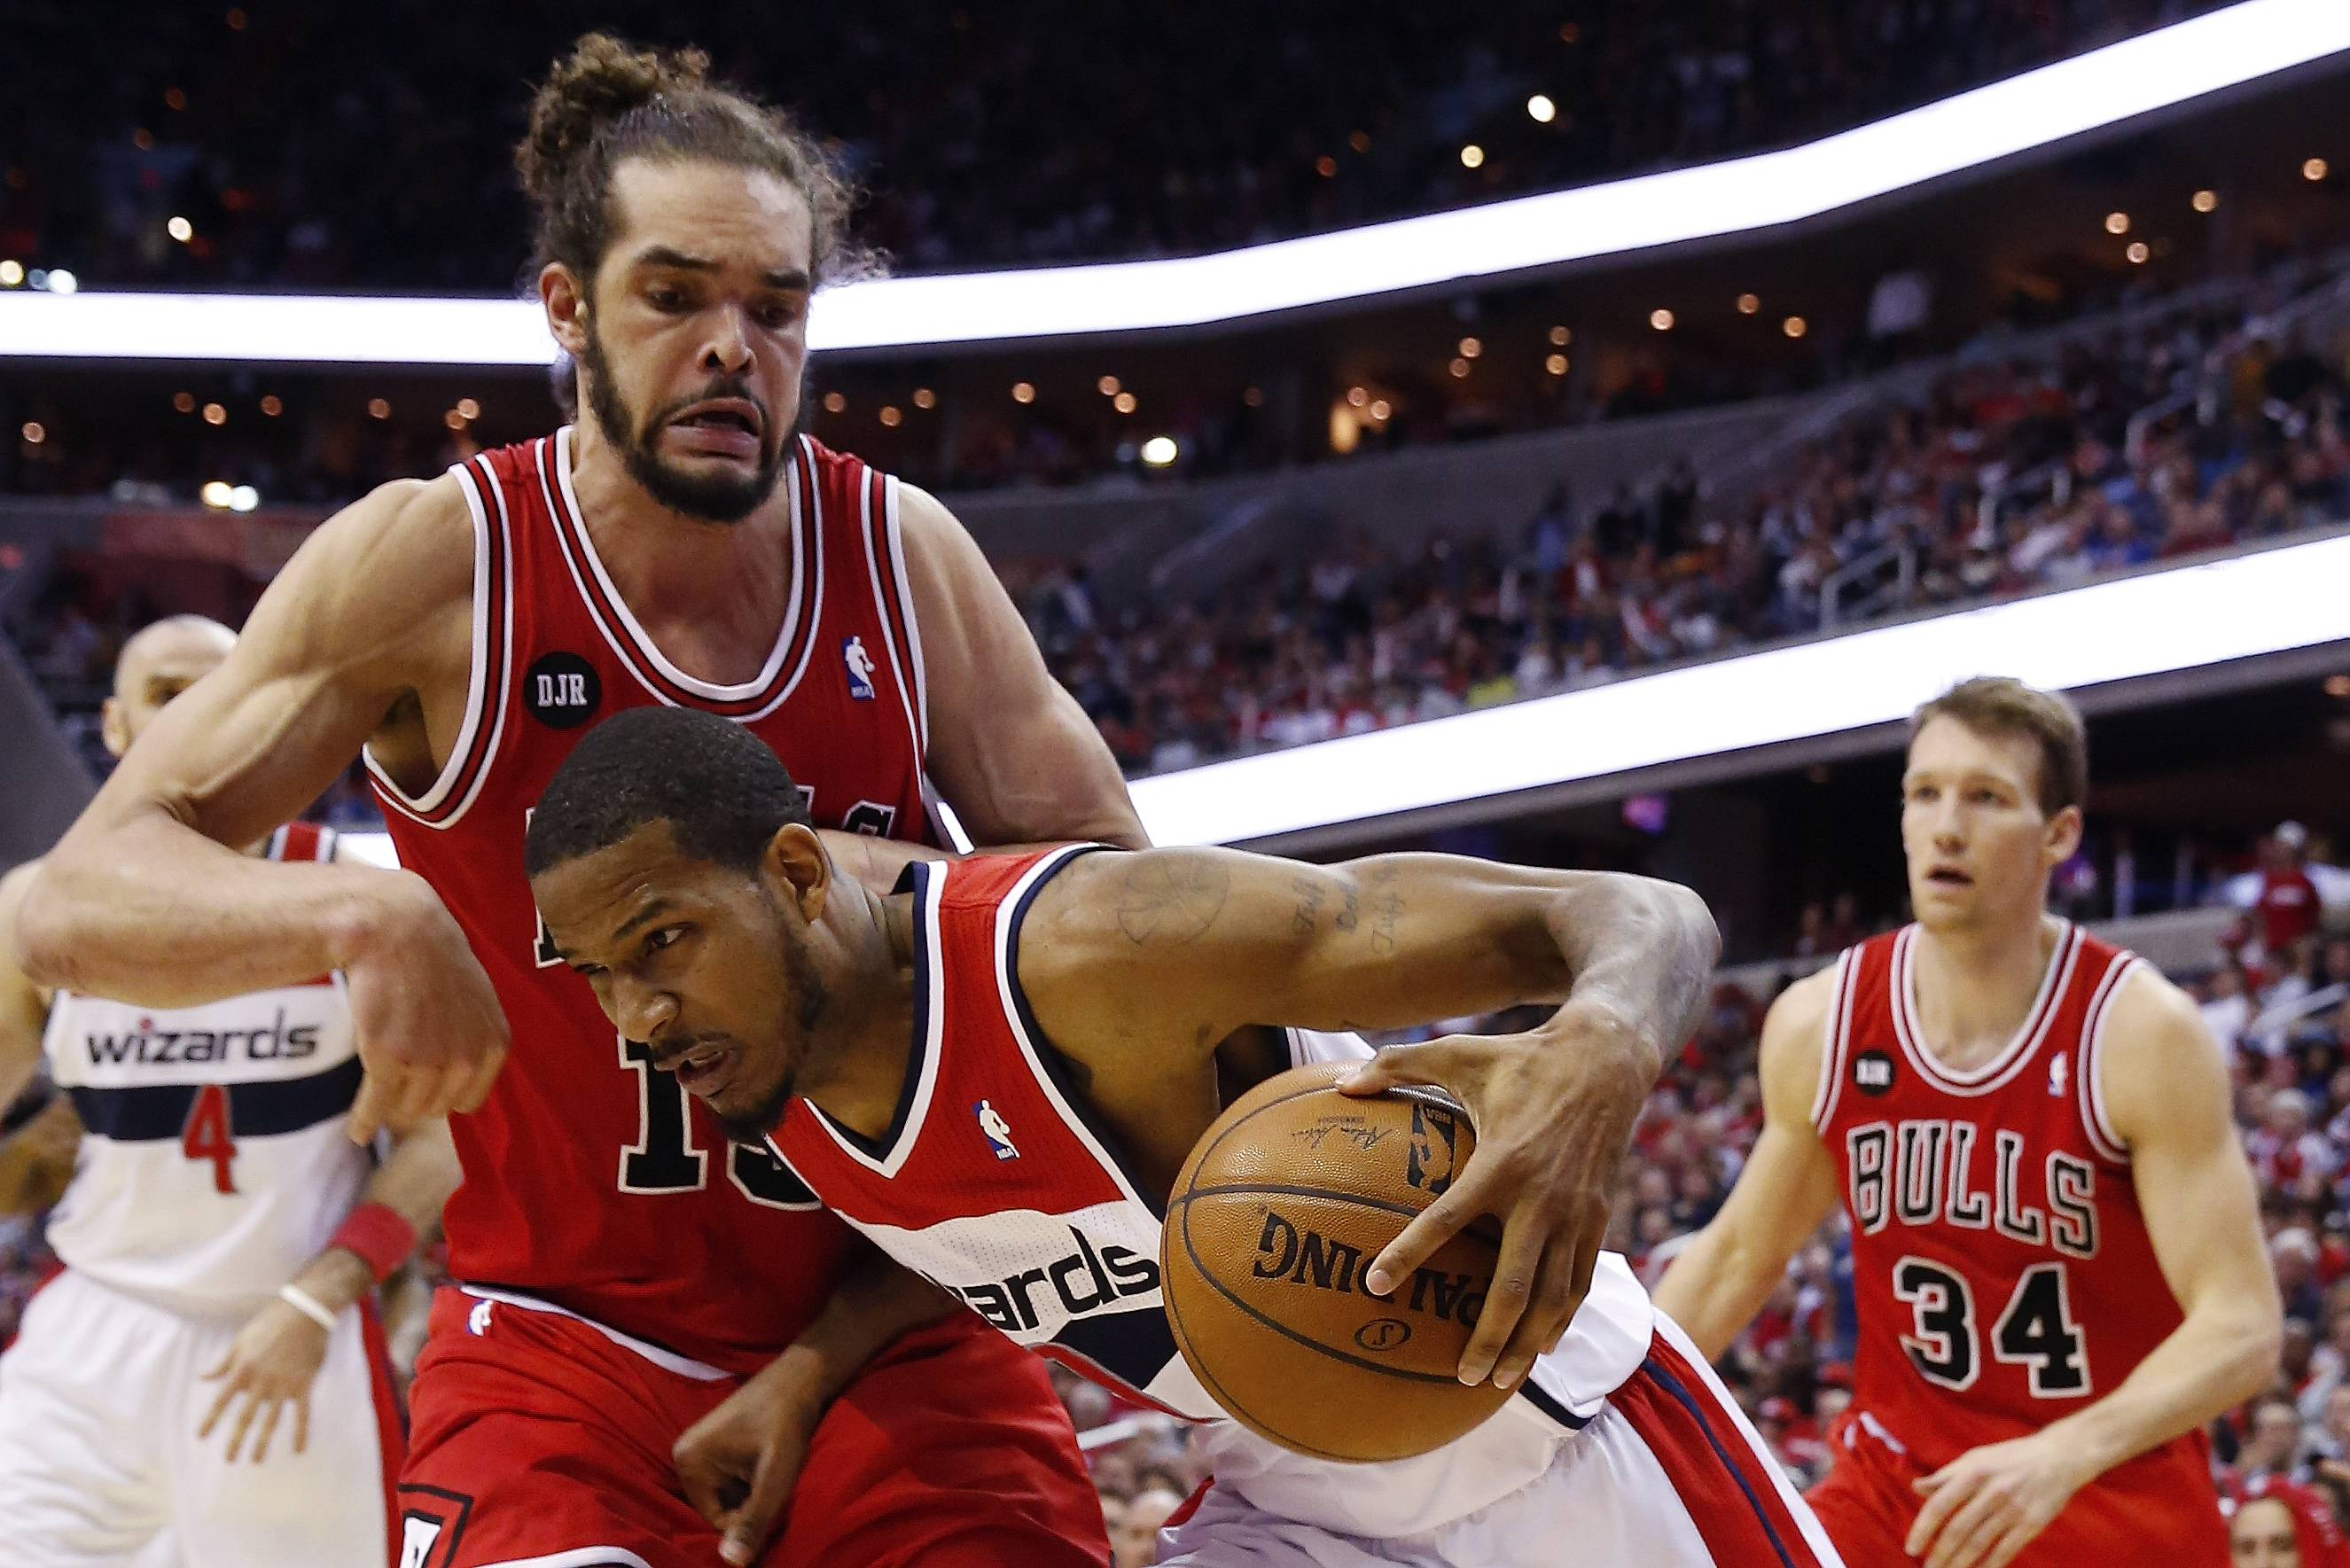 No Nene, no problem for Wizards against Bulls